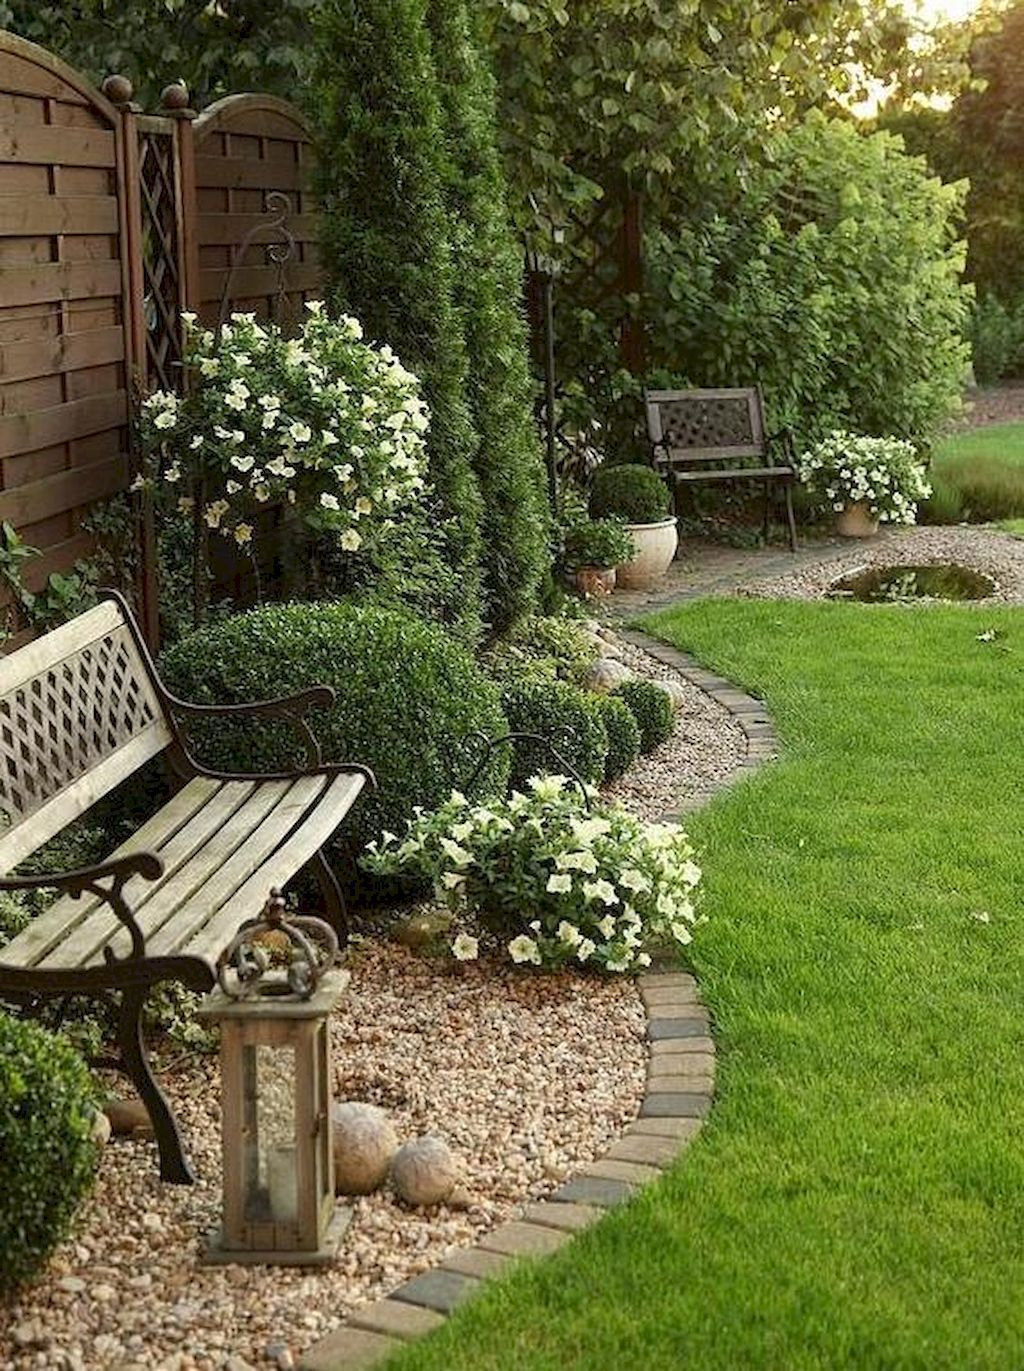 40 Best Backyards Ideas With Simple Modern And Natural Design pertaining to Backyard Gardens Ideas